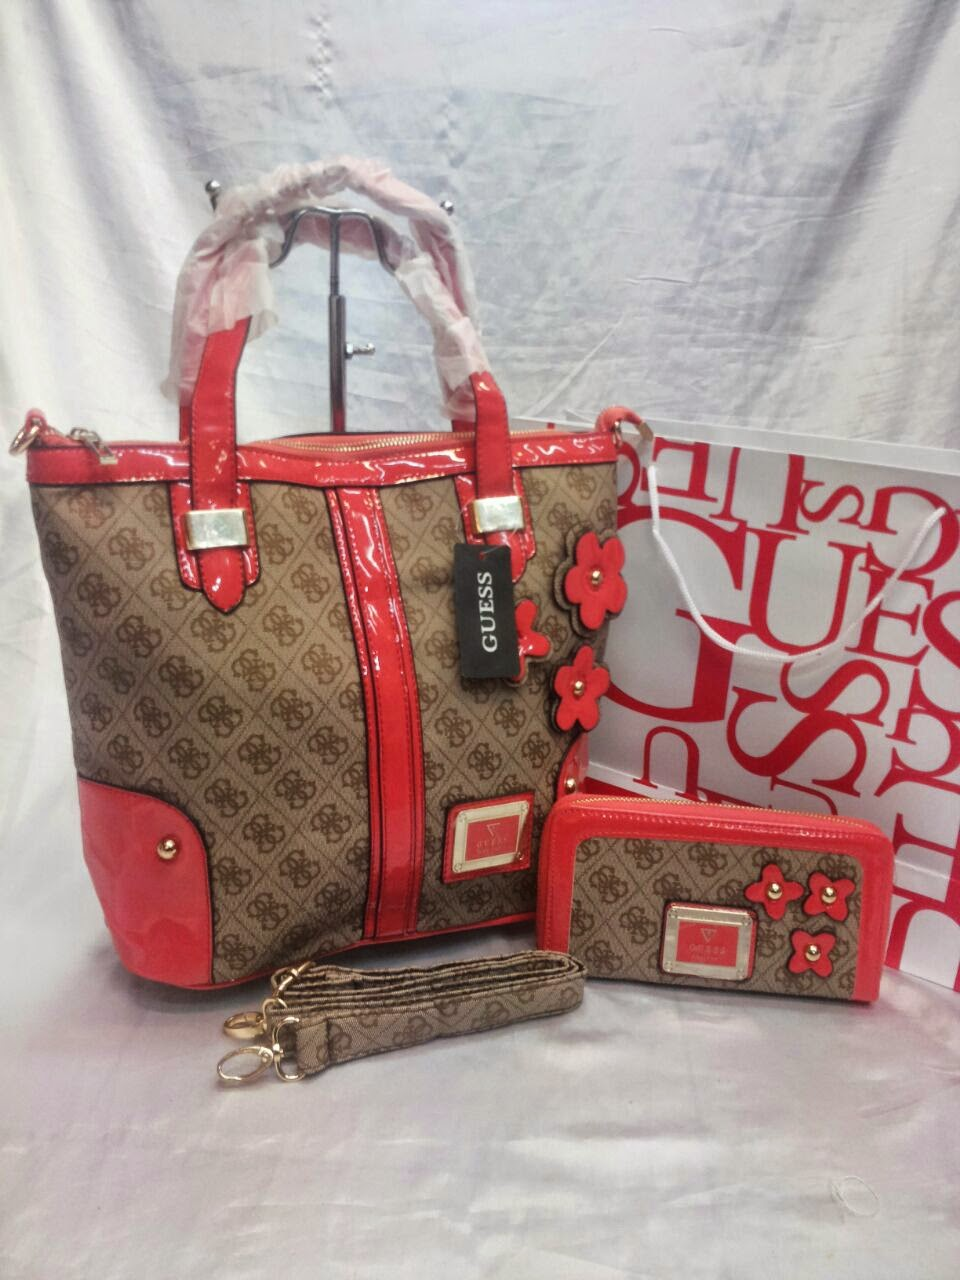 Handbags   Closets  Handbag GUESS Special Offers! a85a8edc1dc